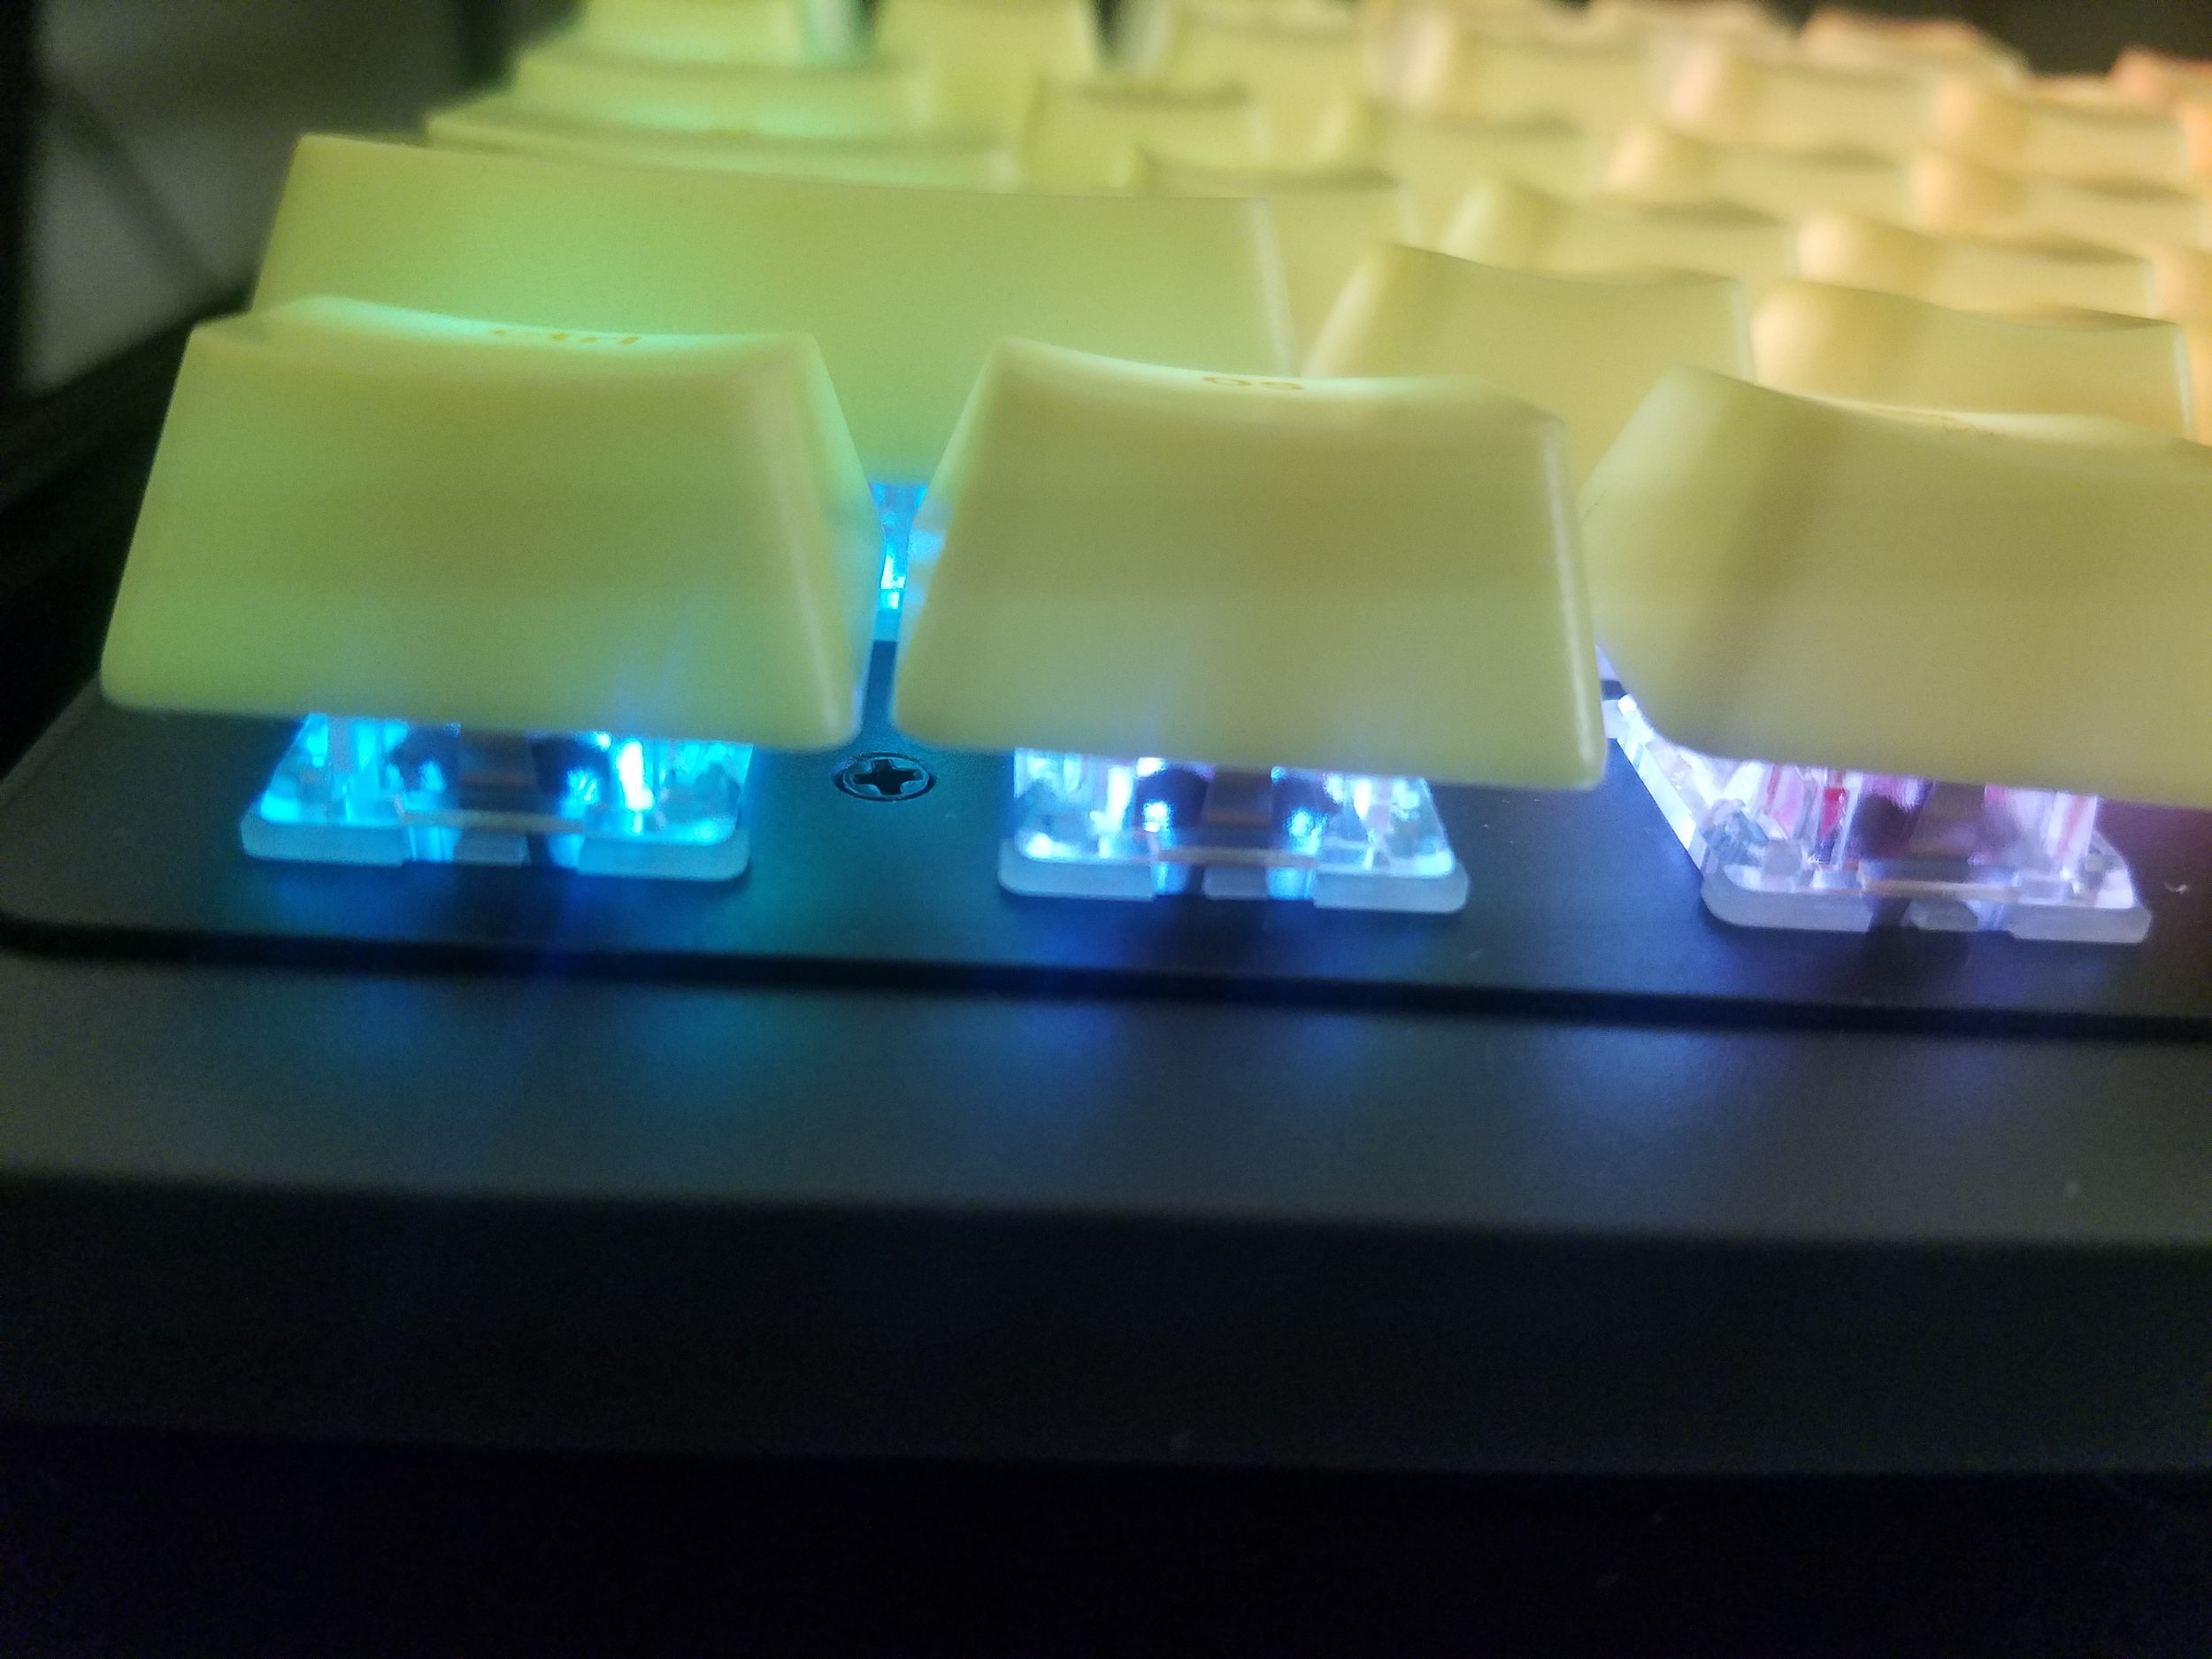 A small taste to what can be done with the RGB backlighting